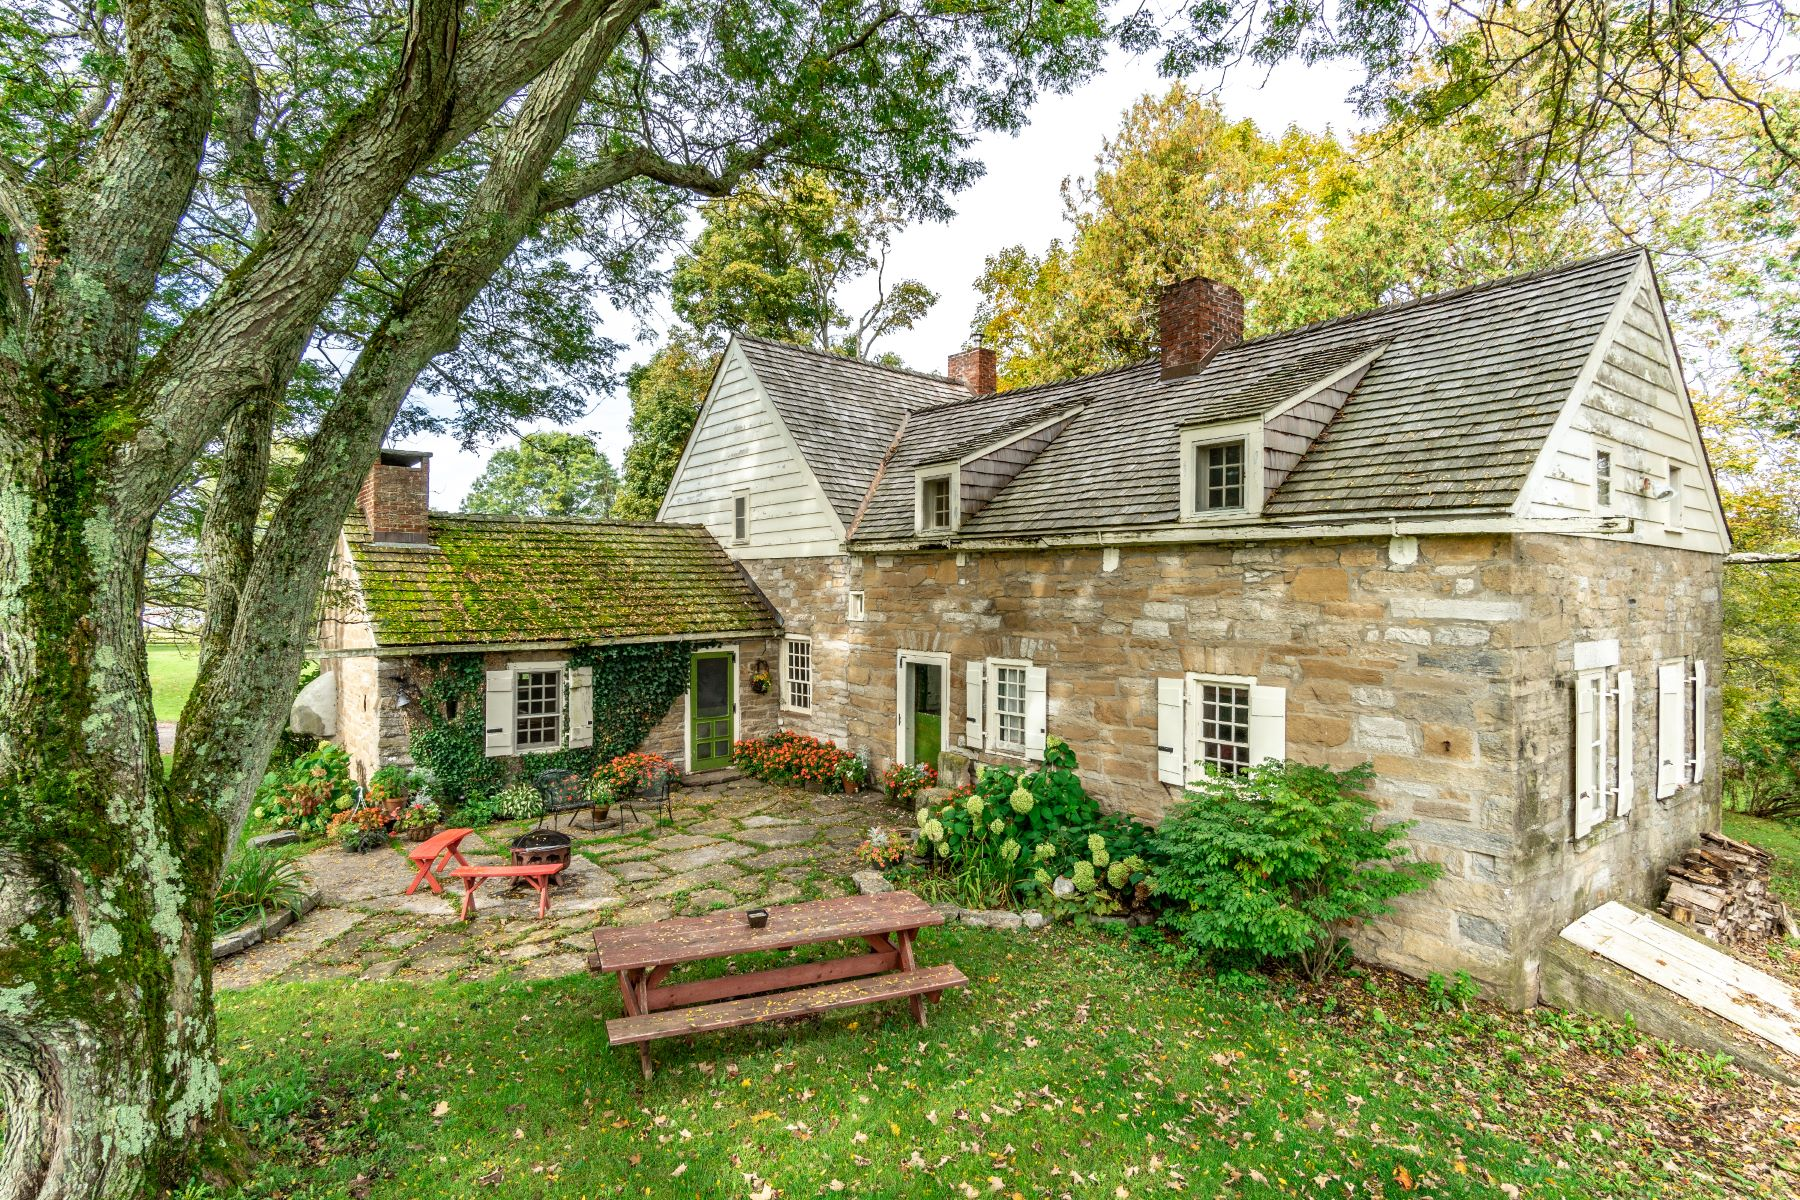 Single Family Homes for Active at Idyllic Brower Farmstead Estate 844 Hickory Hill Rd Fort Plain, New York 13339 United States